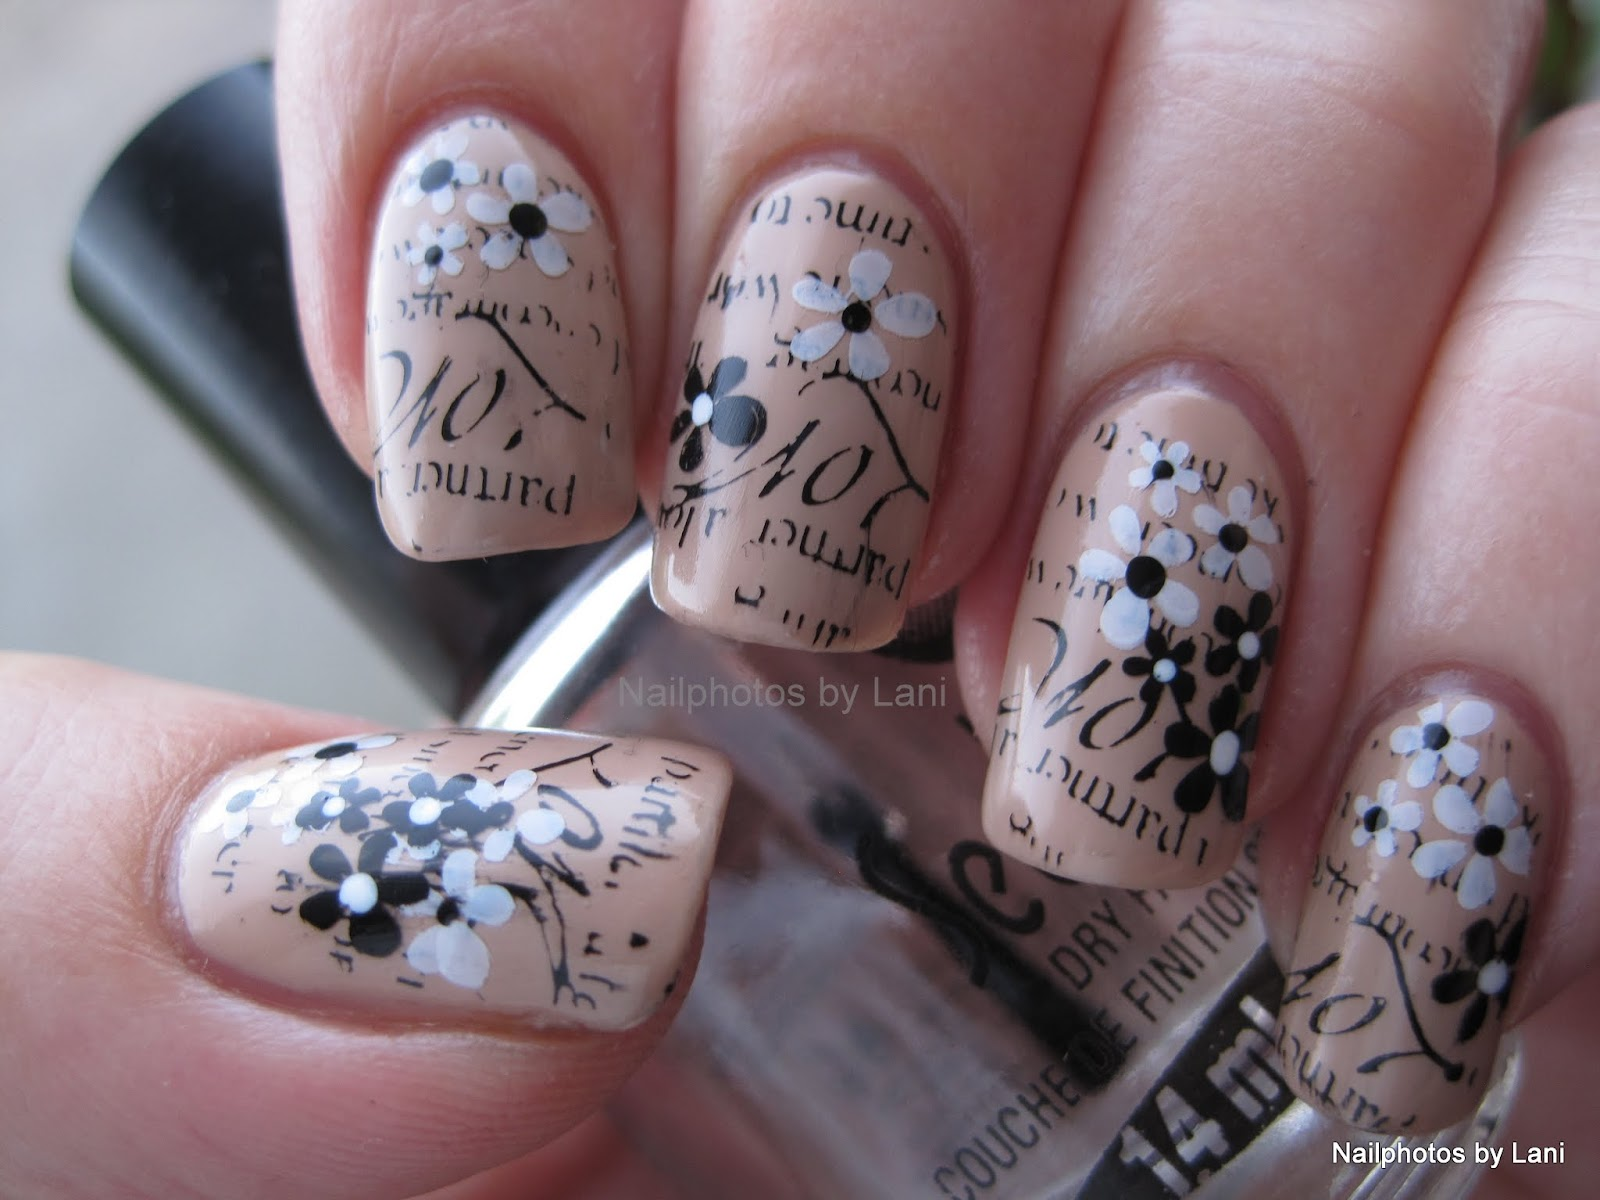 Nailphotos by Lani: Stamped Newspaper Nails with Flowers- AIS ...